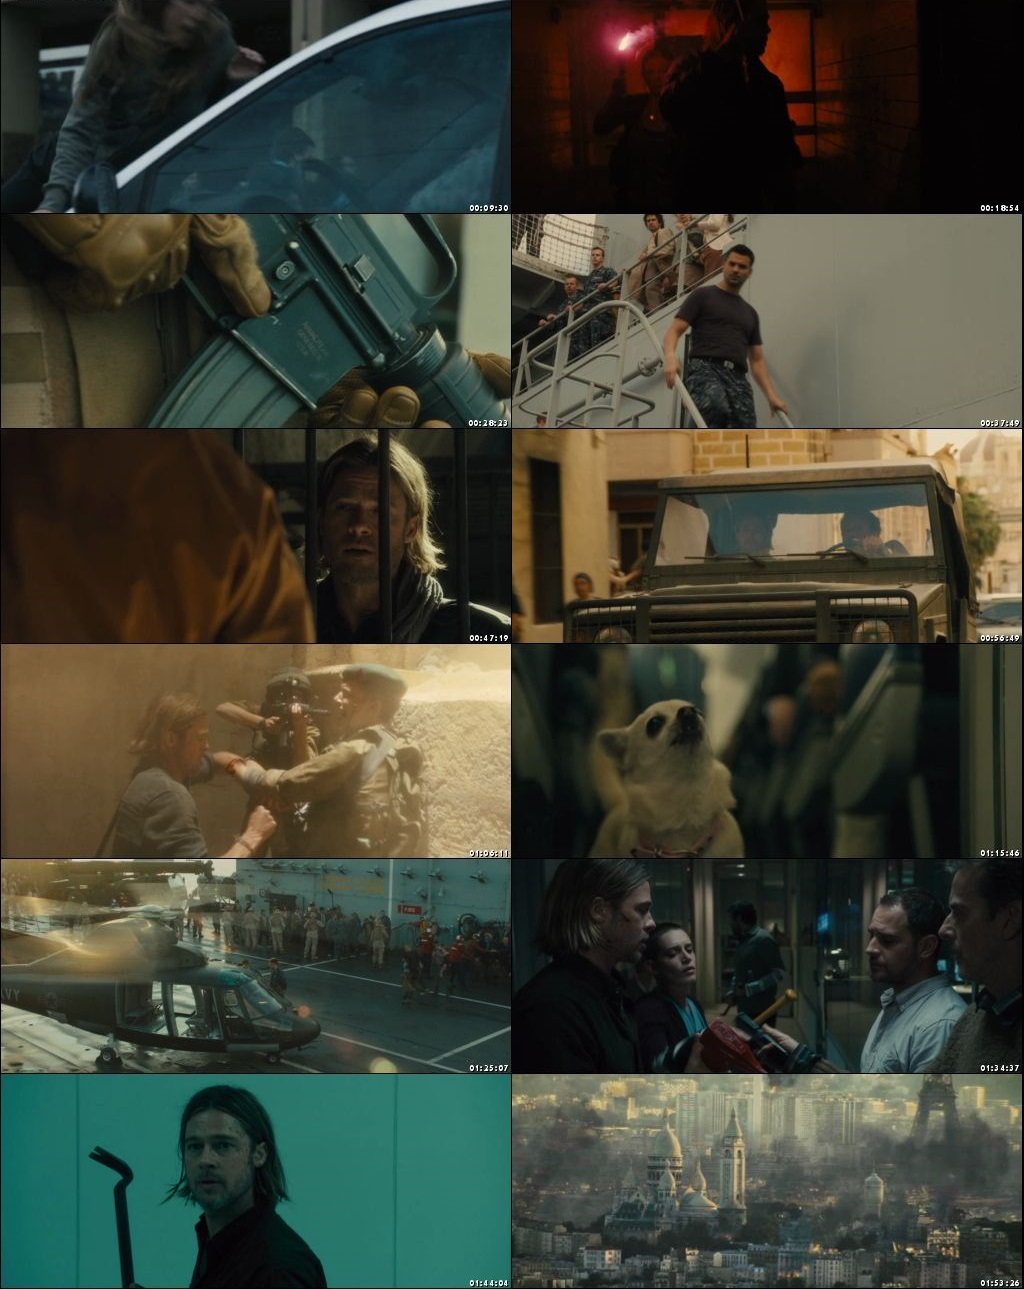 Watch World War Z 2 Full Movie Online Free - Putlocker